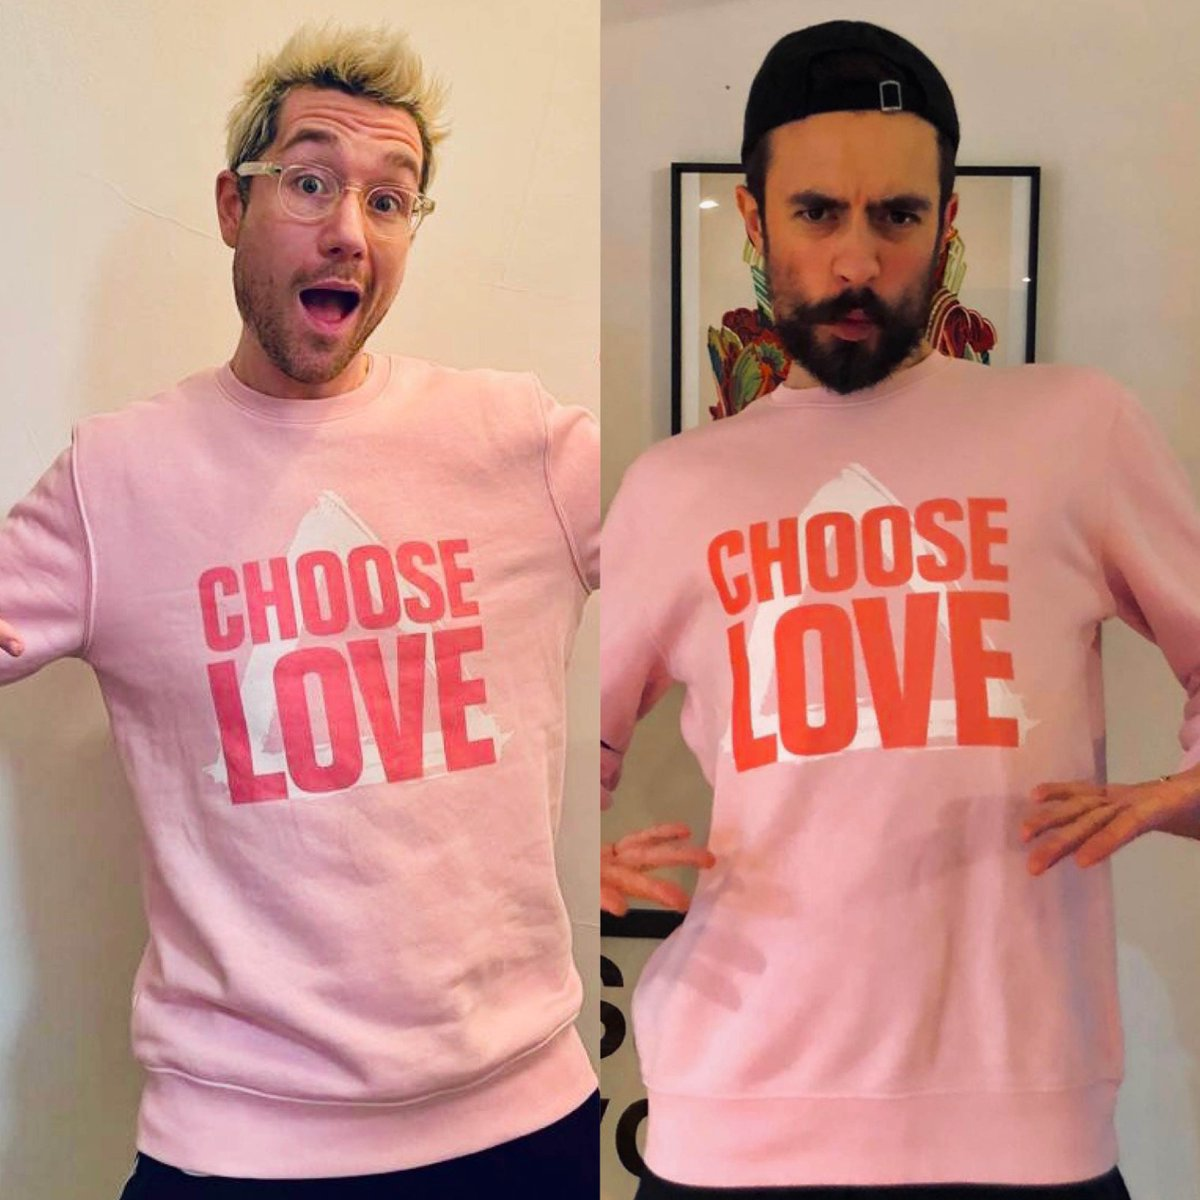 Limited edition Choose Love sweatshirts designed for us by our phenomenal friend @bastilledan - 100% of profits from these organic cotton sweatshirts support refugee projects around the world.     Modelled by the stunning @Kyle_JSimmons and @bastilledan.